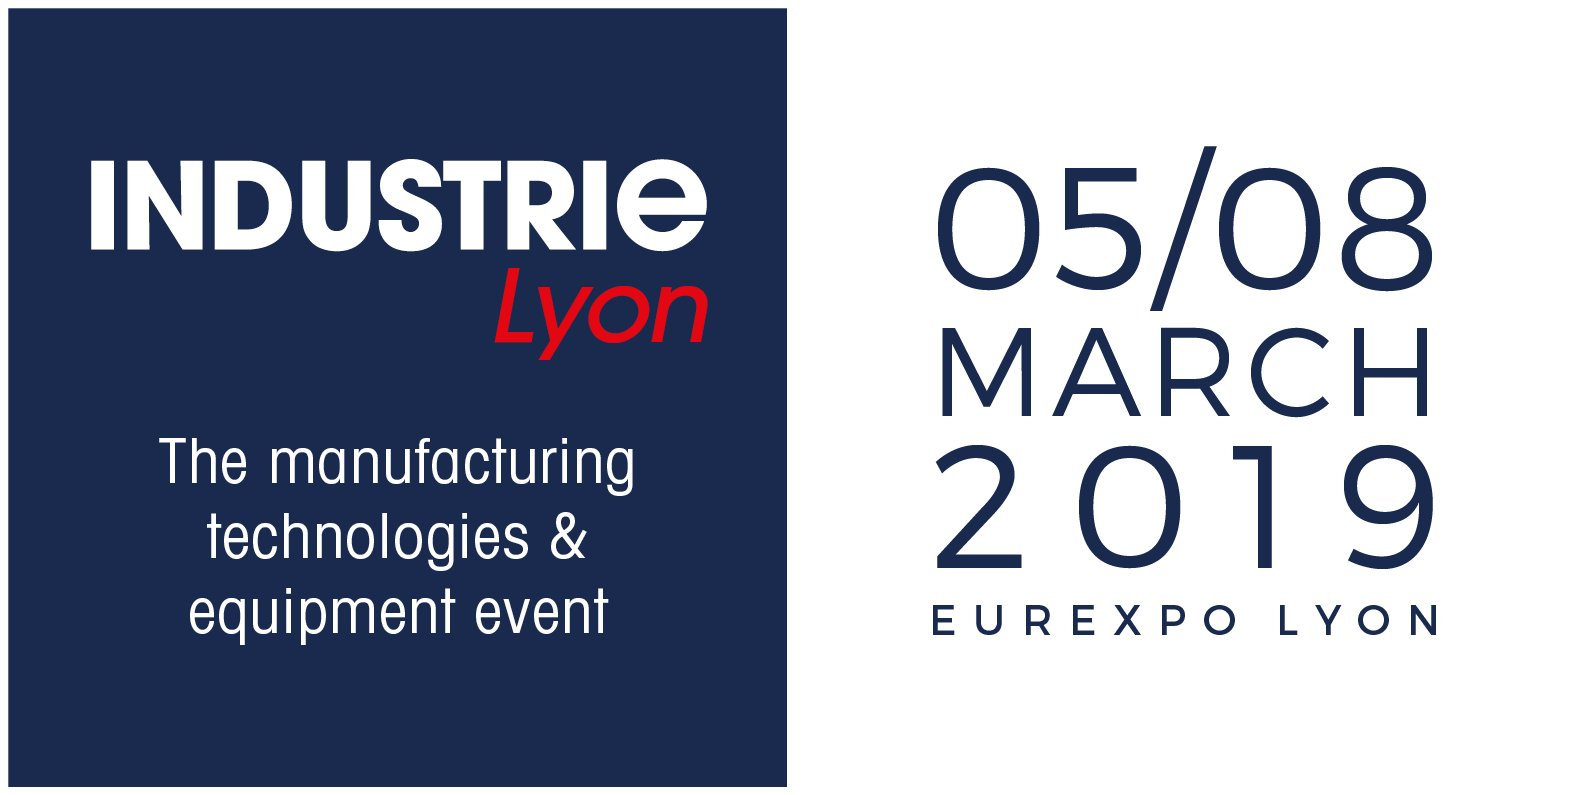 Meet Datakit at Industrie Lyon 2019